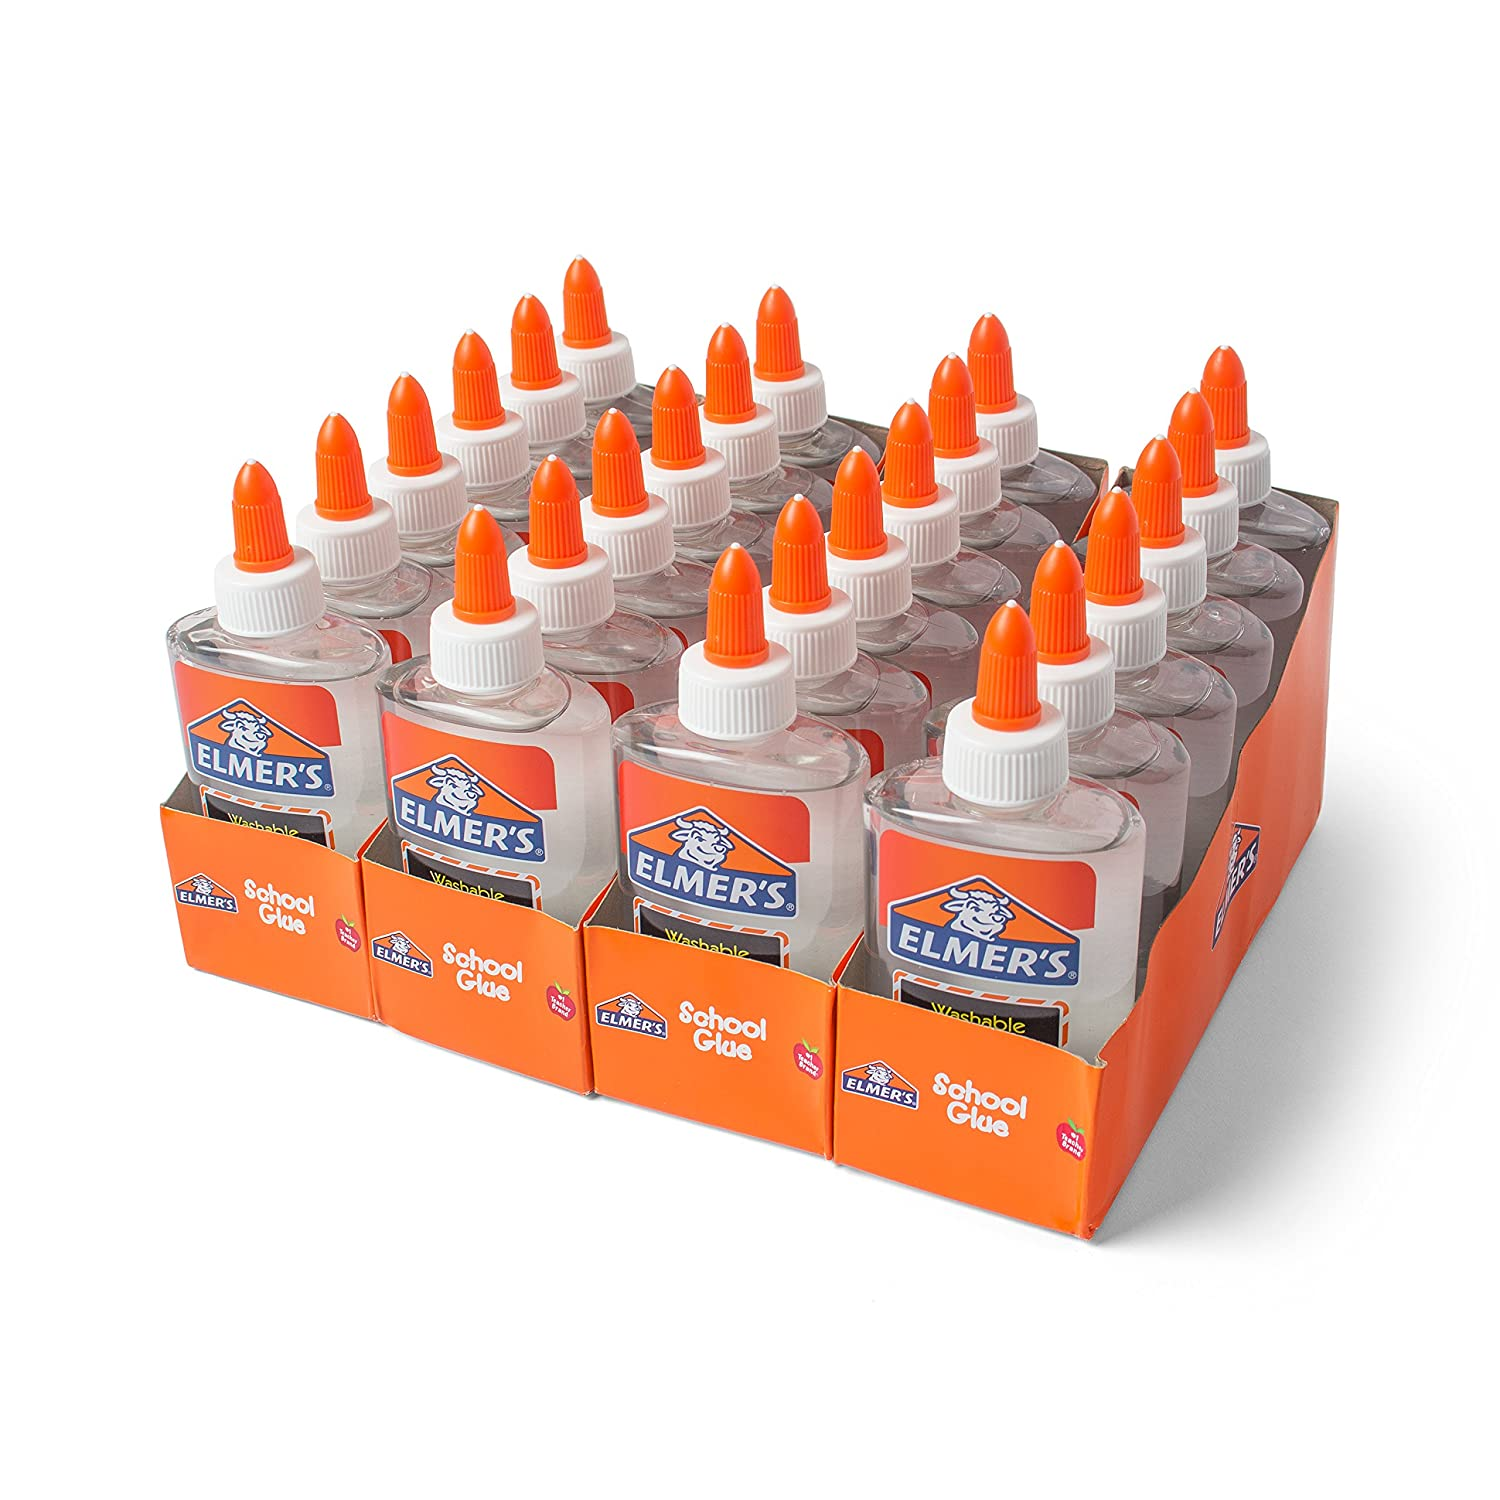 Elmer's Liquid School Glue, Clear, Washable, 5 Ounces, 24 Count - Great for Making Slime Elmer' s Products E305W